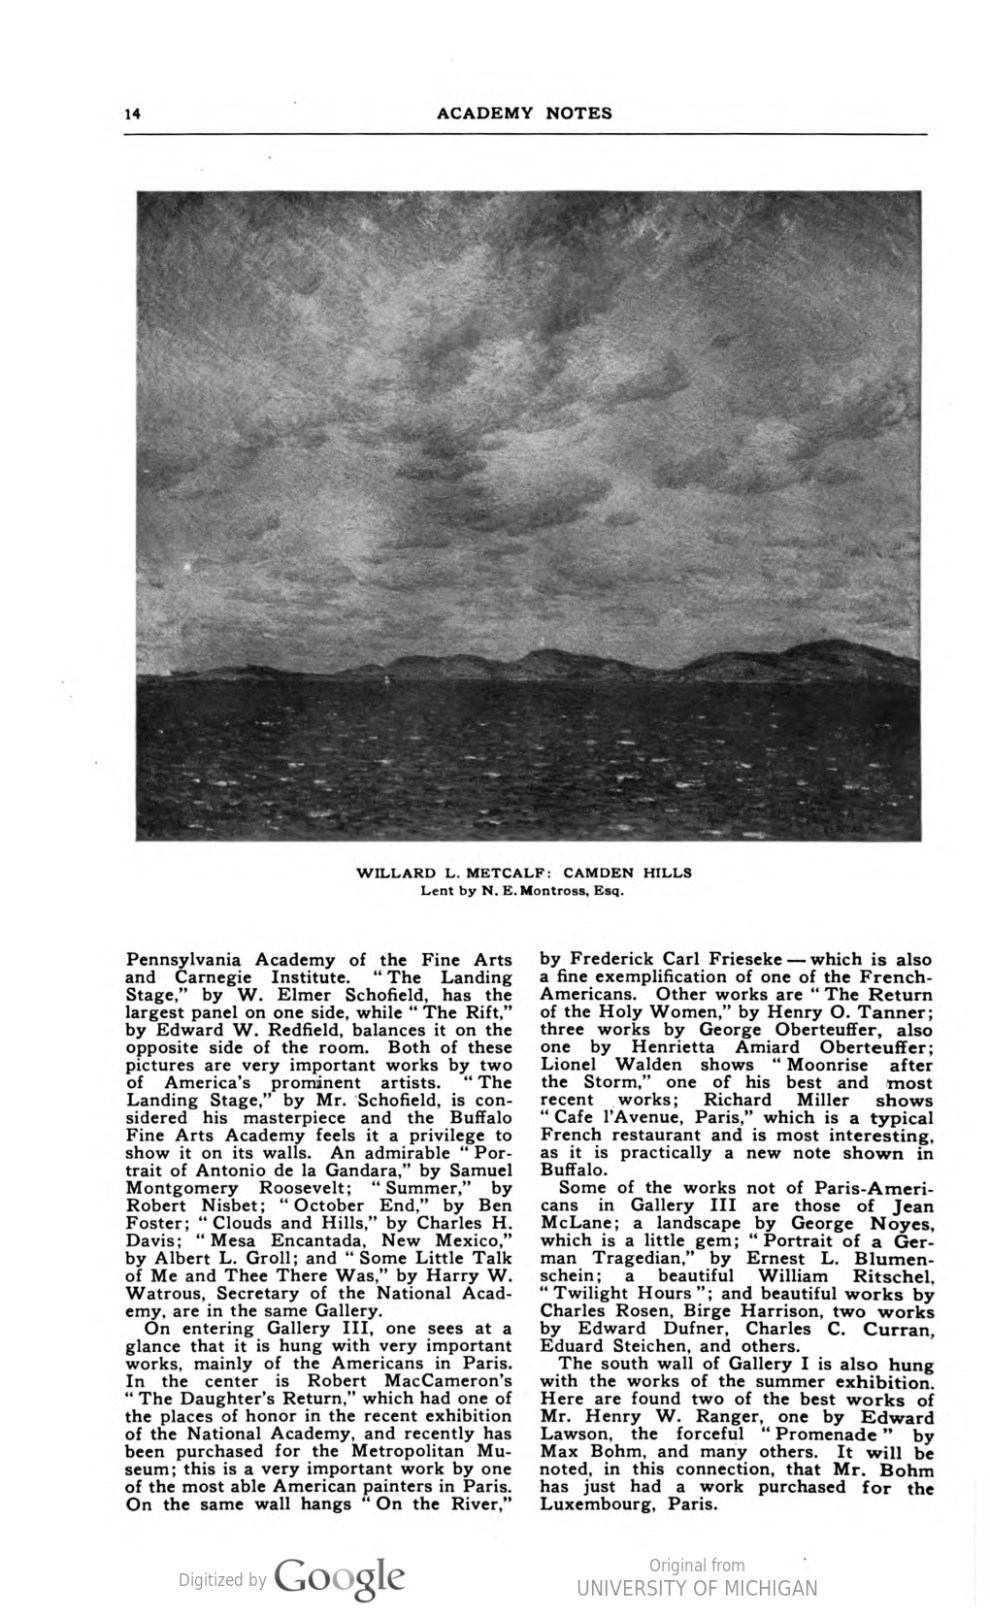 "Academy Notes, Buffalo Fine Arts Academy, Albright Art Gallery, Buffalo, NY, ""The Fifth Annual Exhibition of Selected Paintings by American Artists"", July, 1910, Volume 5, Number 3, page 7-15, not illustrated."